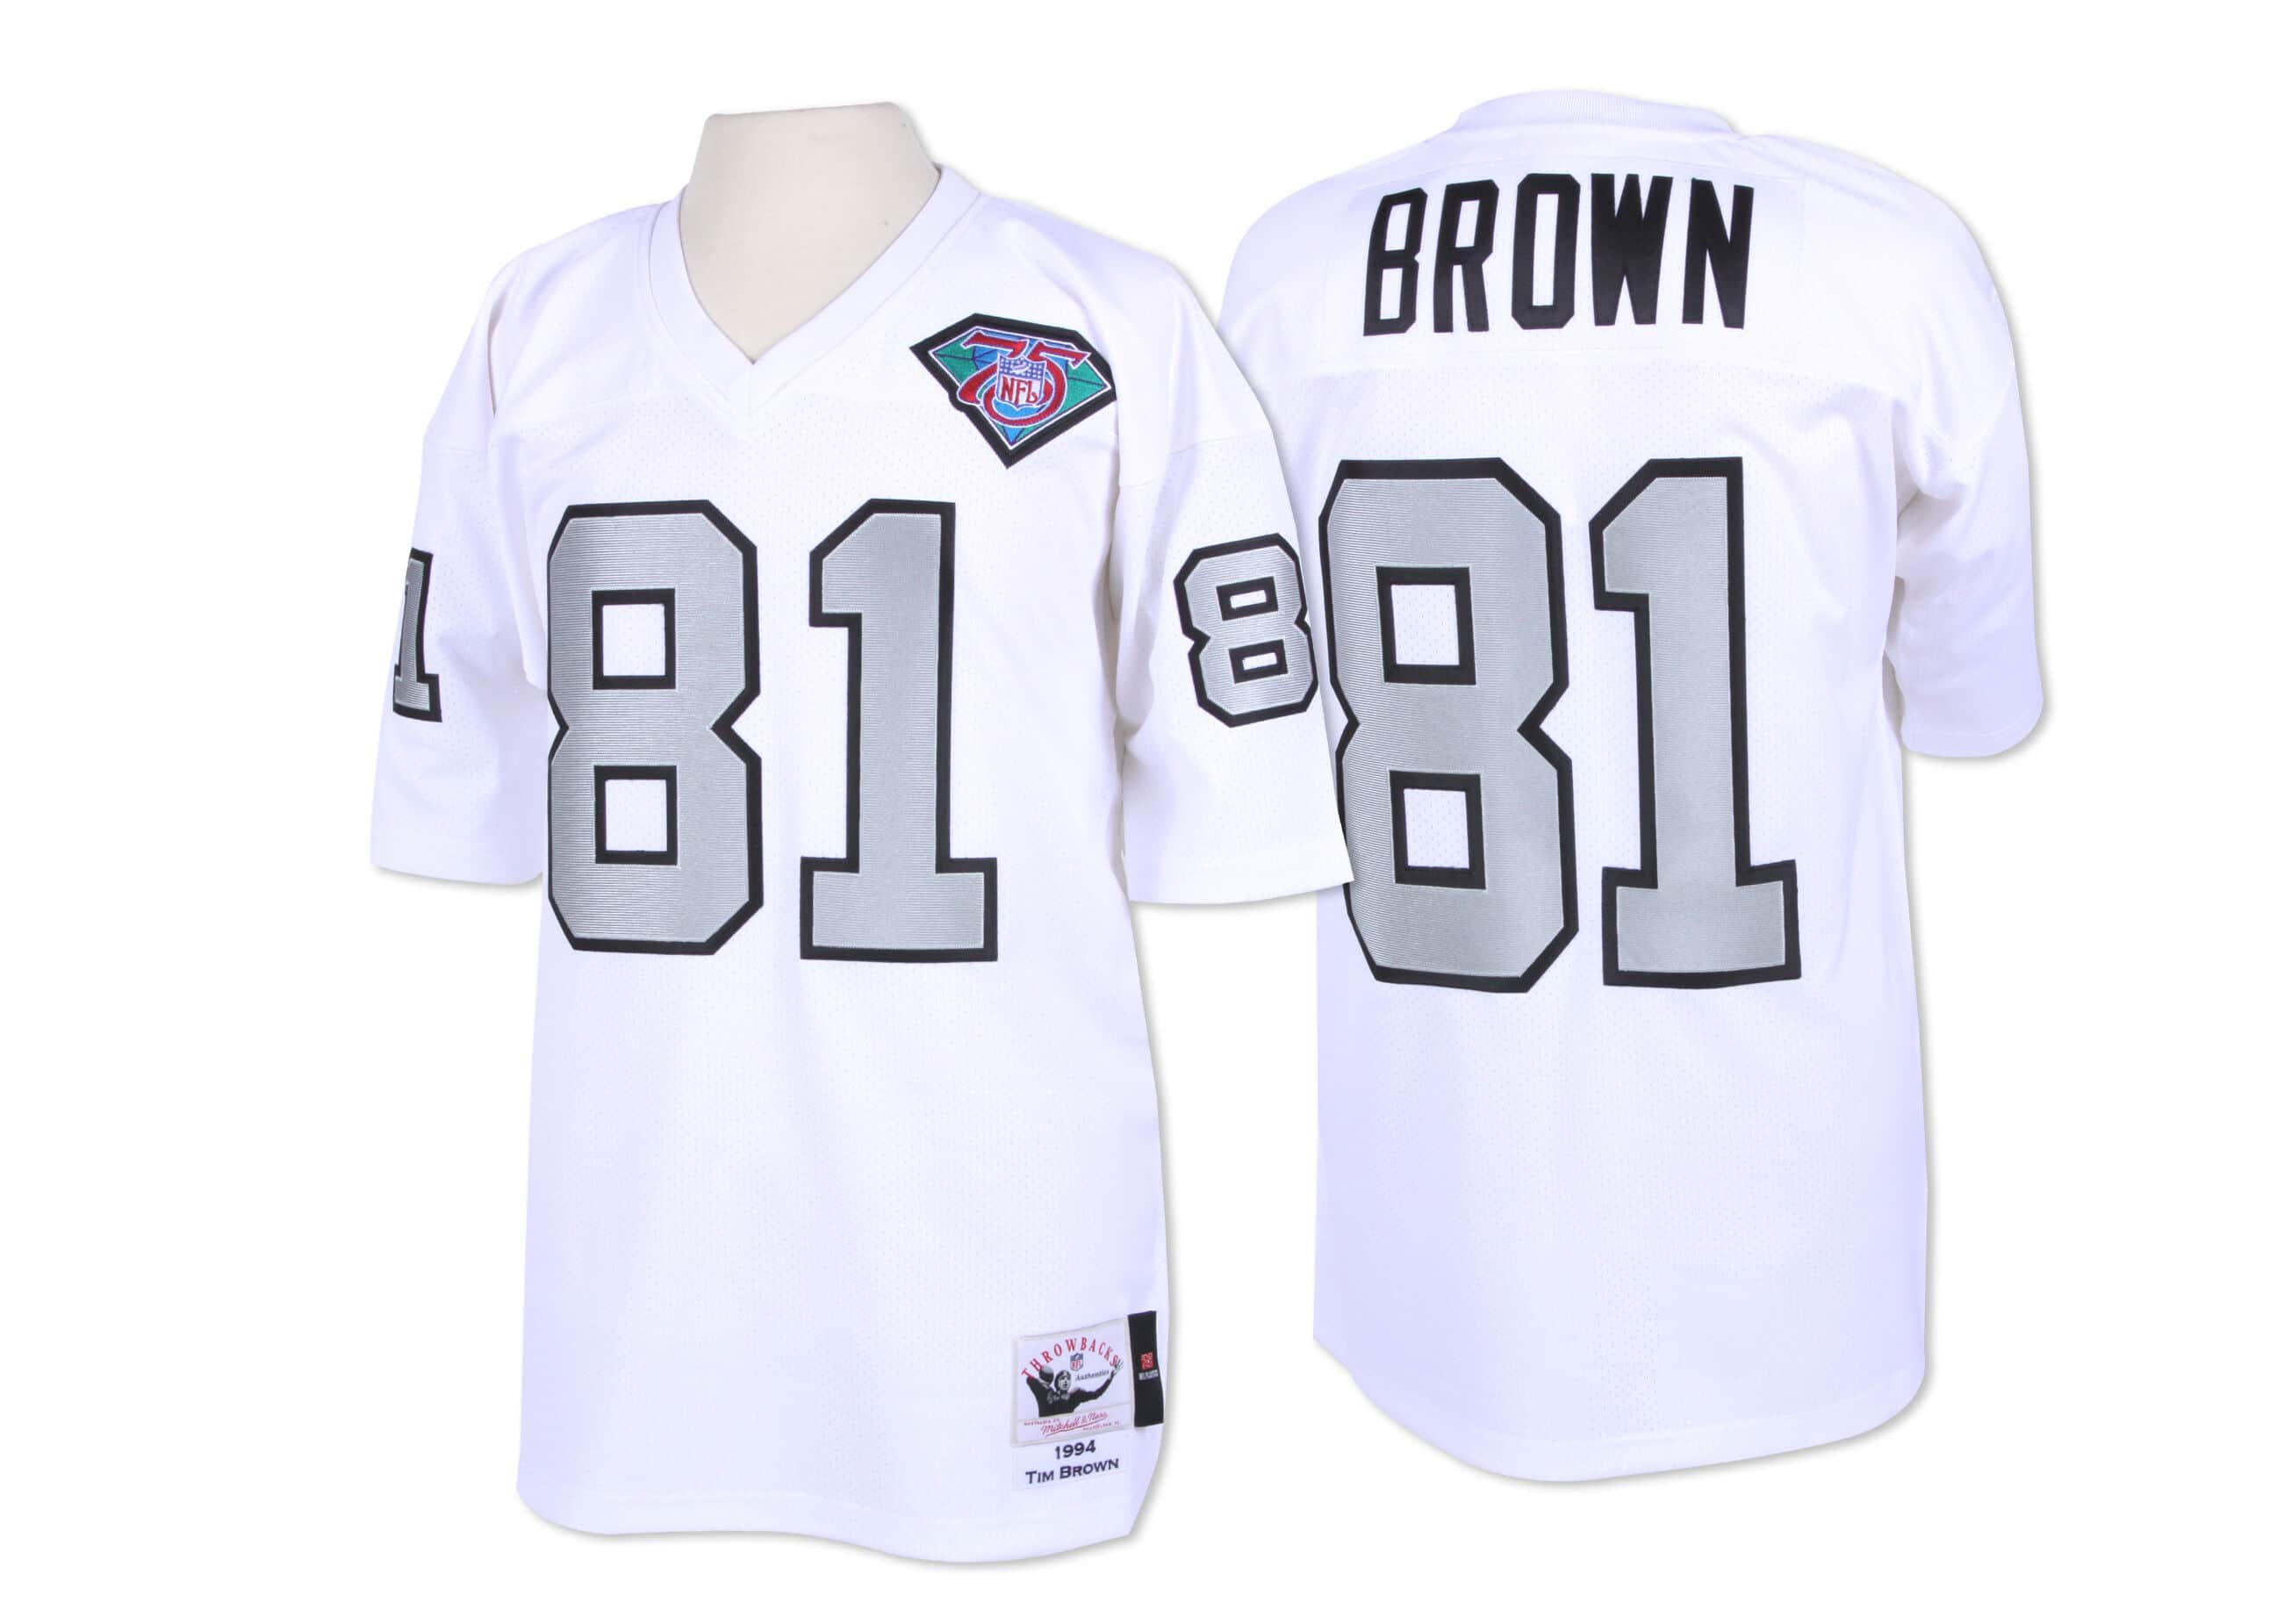 Tim Brown 1994 Authentic Jersey Los Angeles Raiders